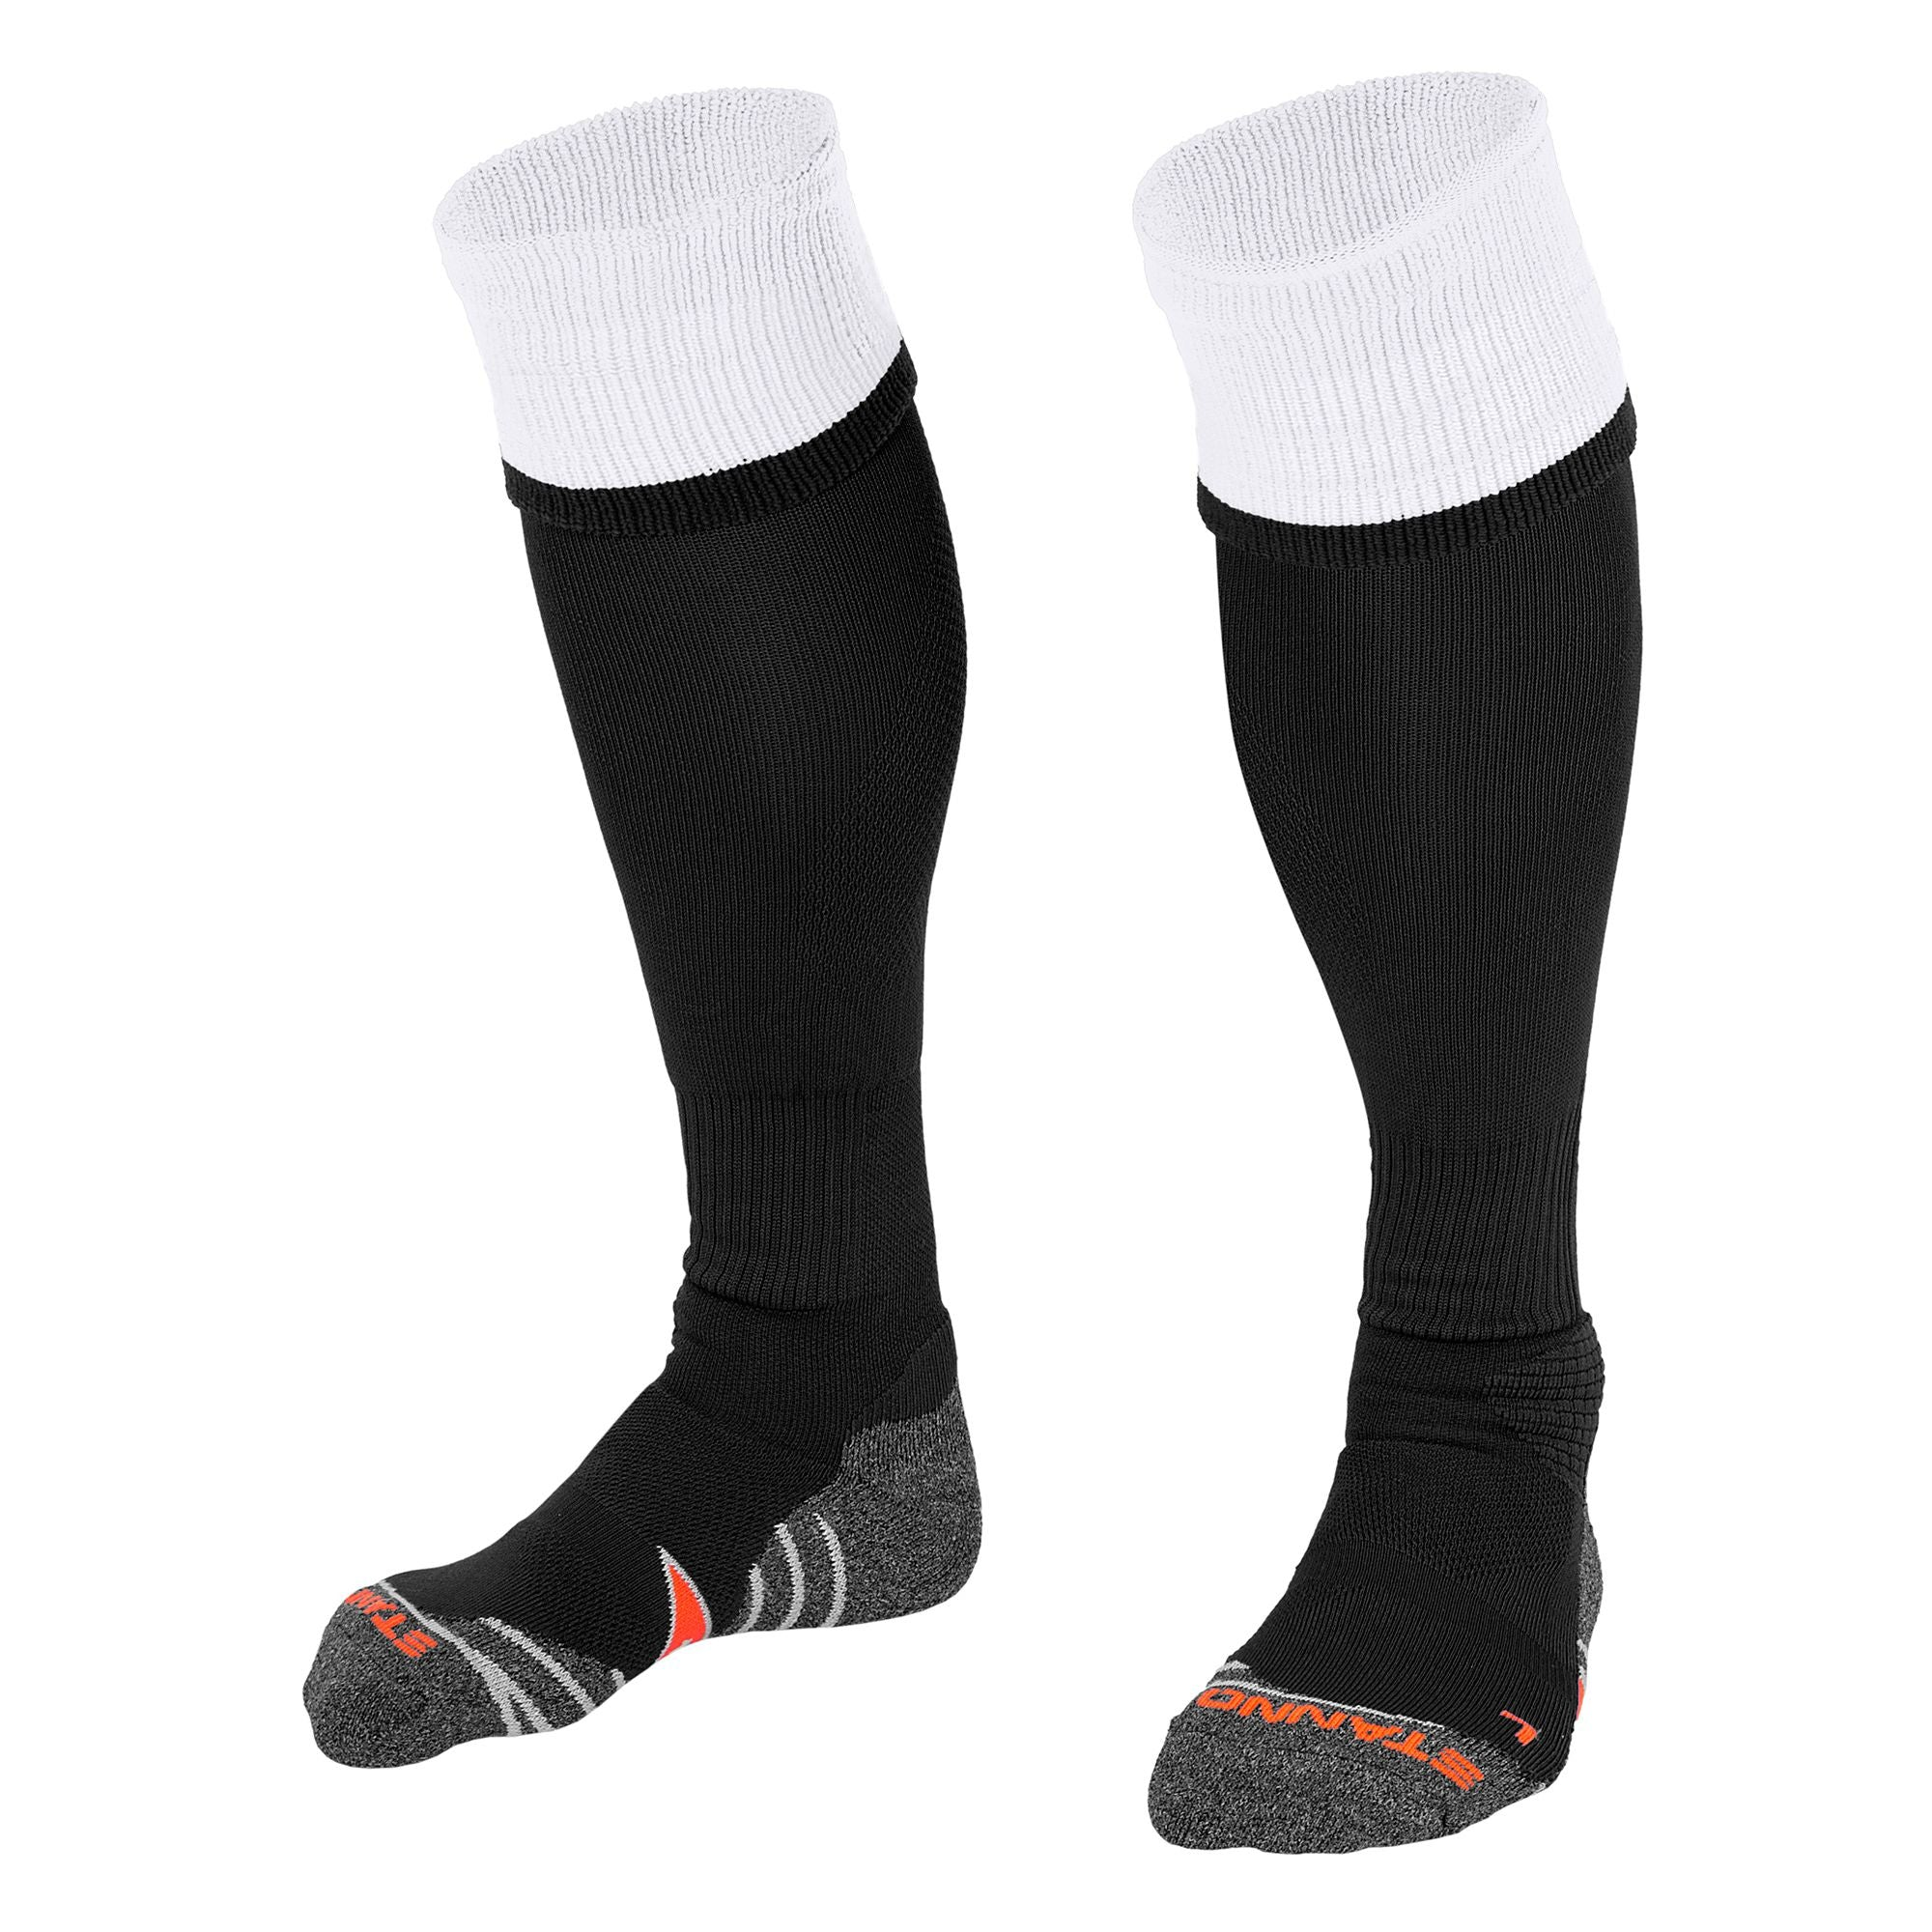 Stanno Combi Sock in black with white contrast tops